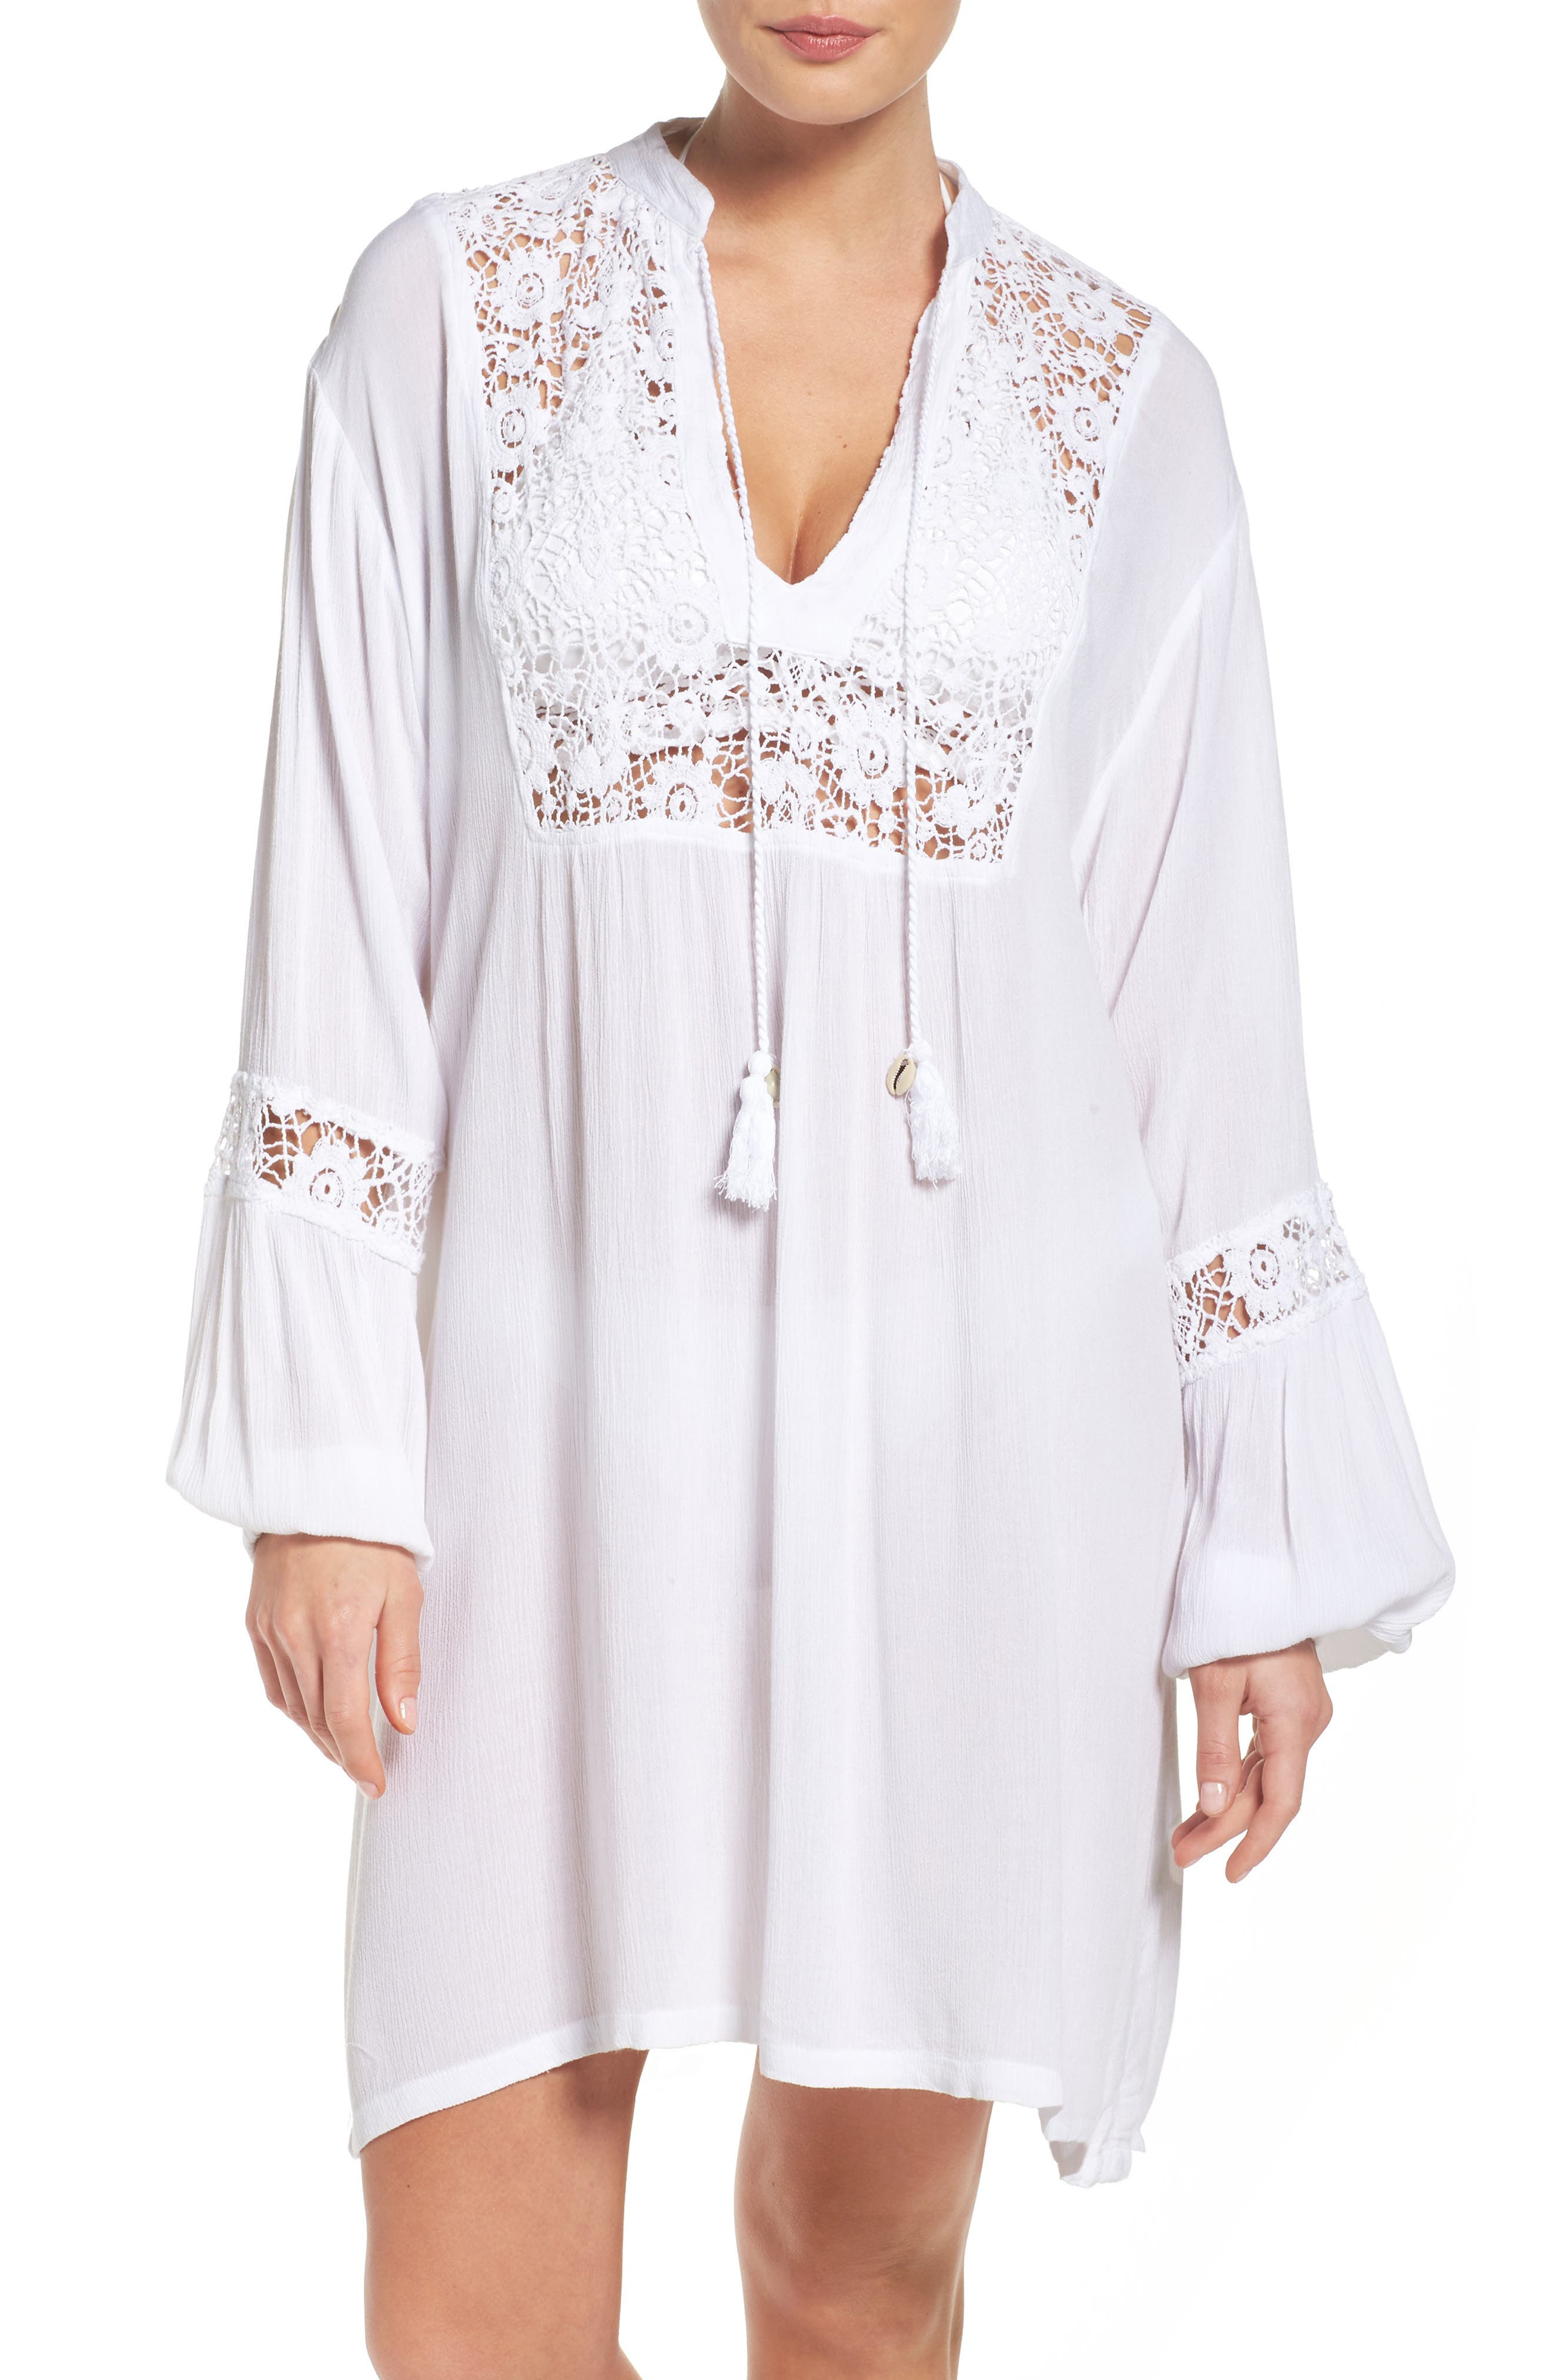 MUCHE ET MUCHETTE Journey Lace Cover-Up Tunic